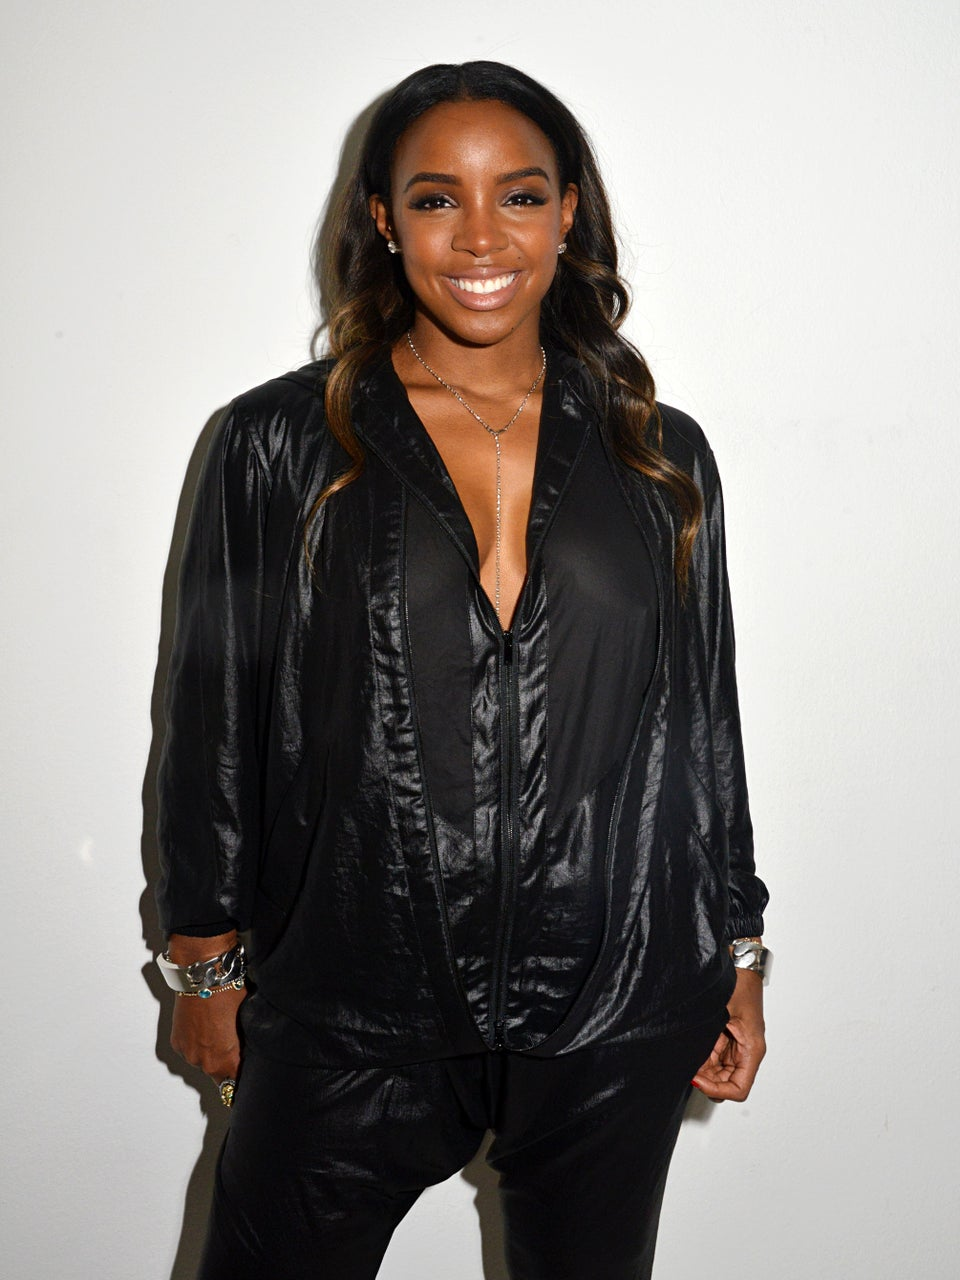 How Kelly Rowland Wants to Use Her #BlackGirlMagic to Help Girls Realize Their Potential